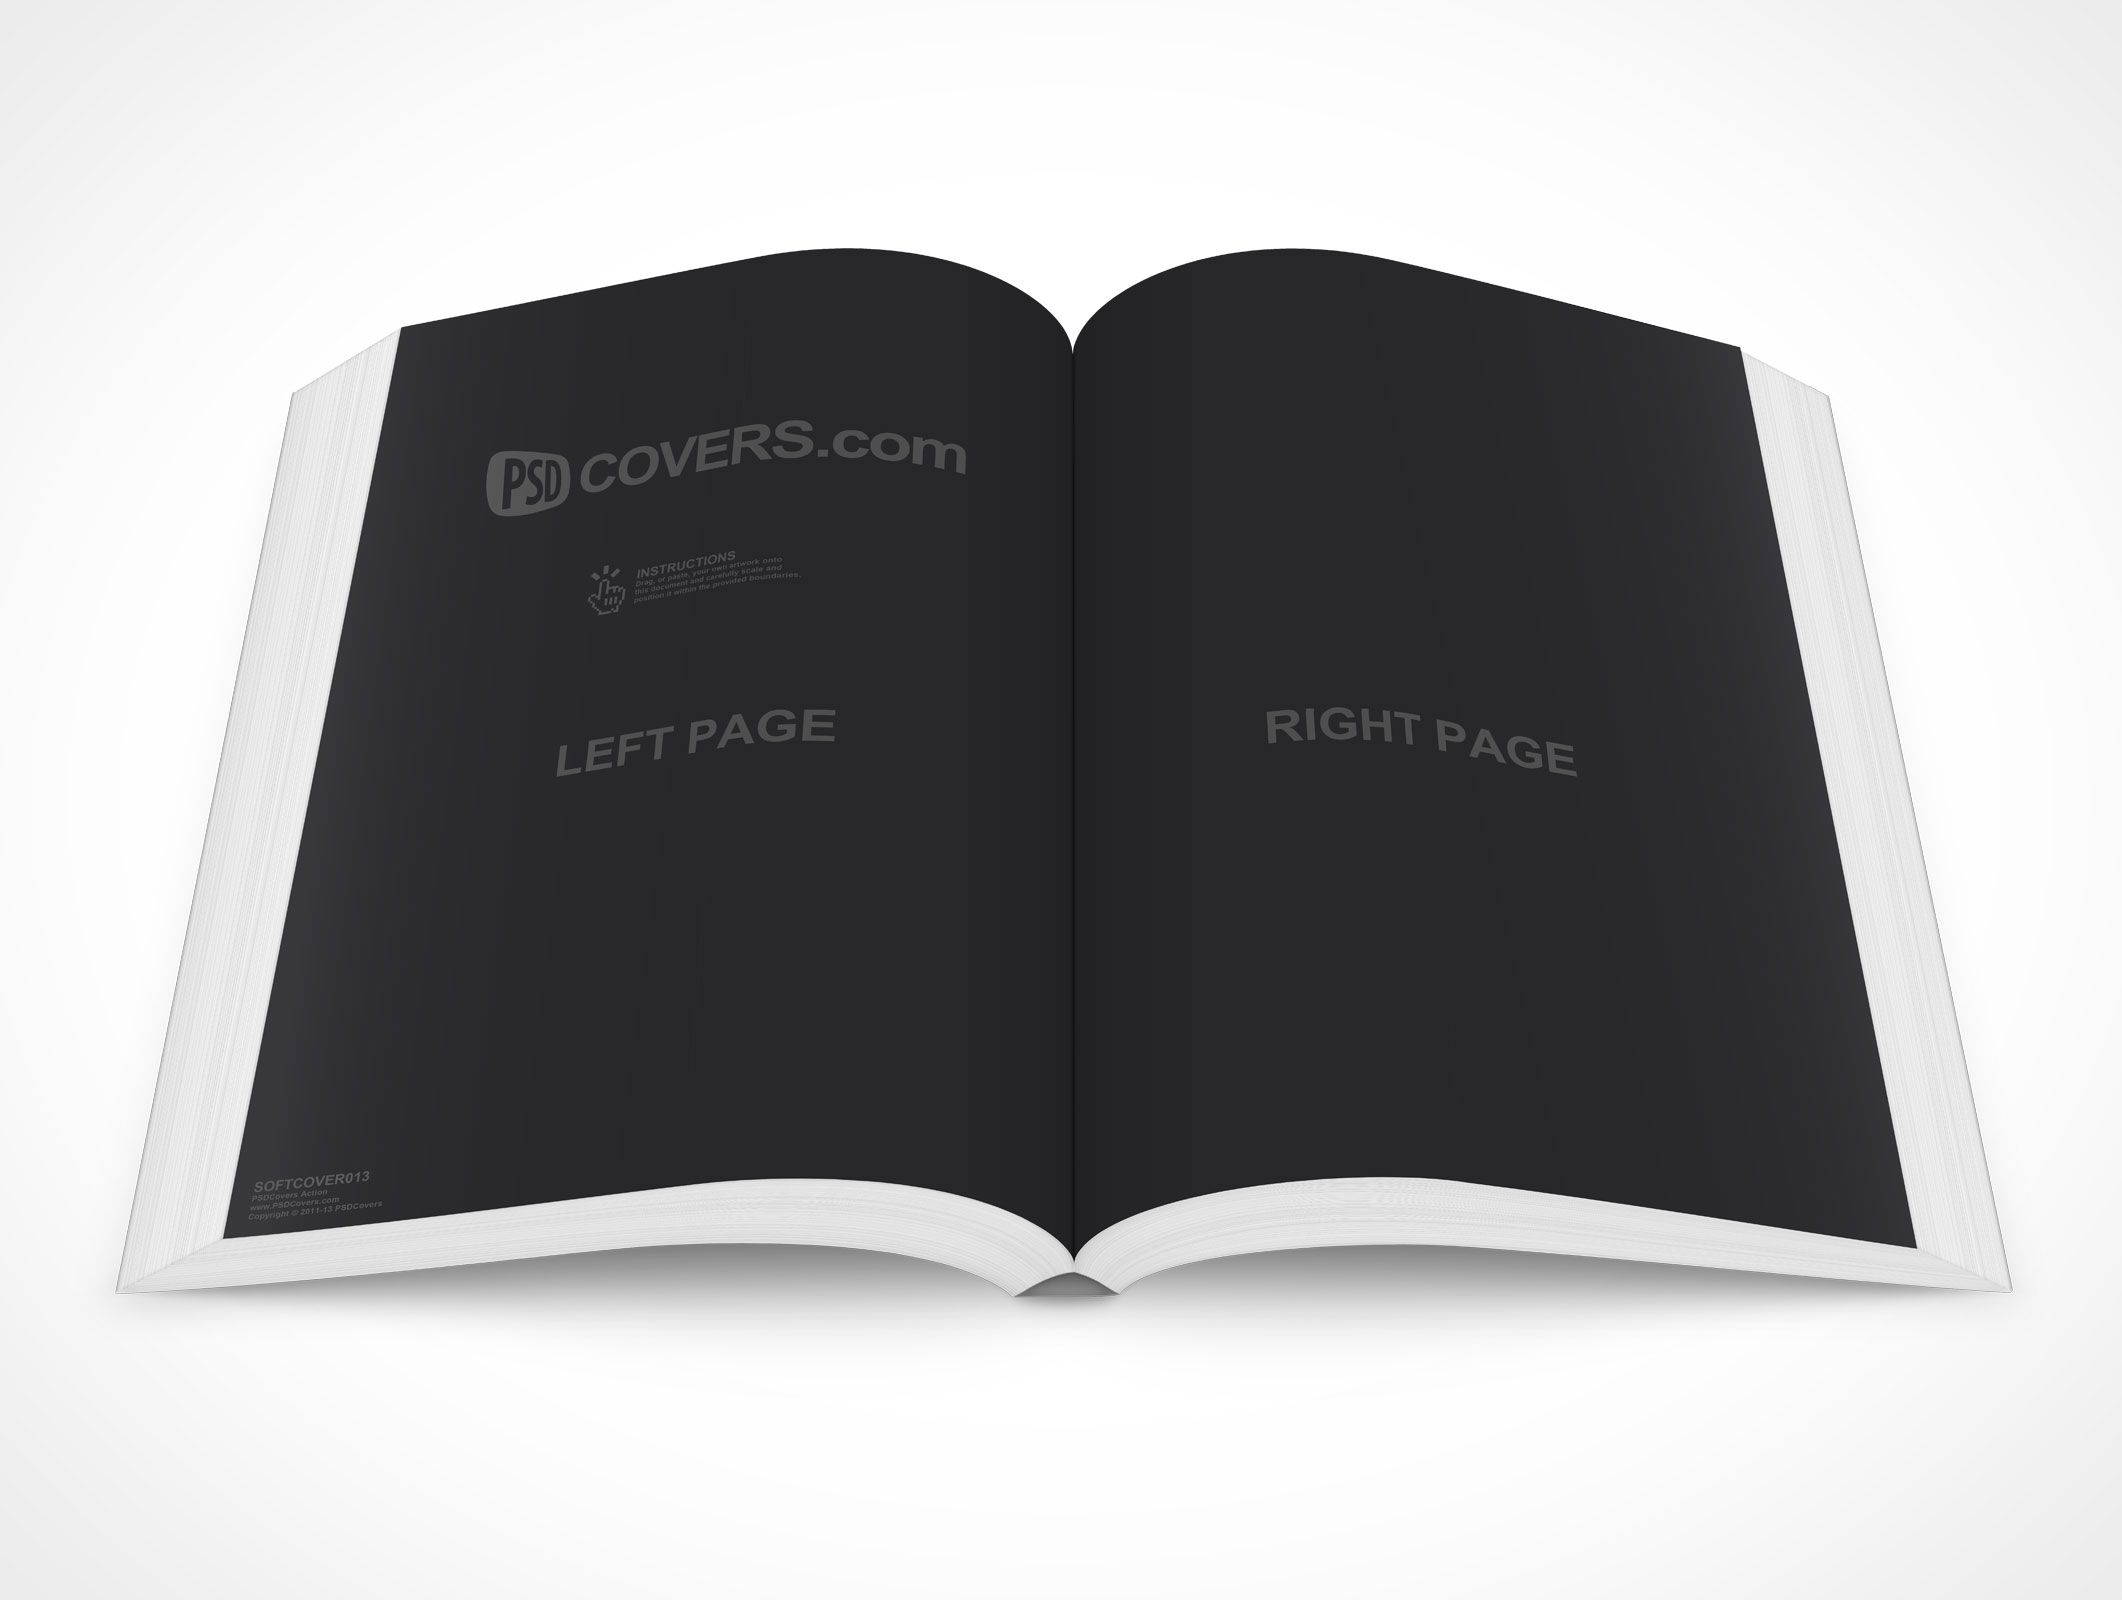 Softcover013 Is An Open Book Mockup Laying On A Flat Surface This Psd Mockup Template Is Rendered Face On Looki Psd Mockup Template Mockup Psd Mockup Template